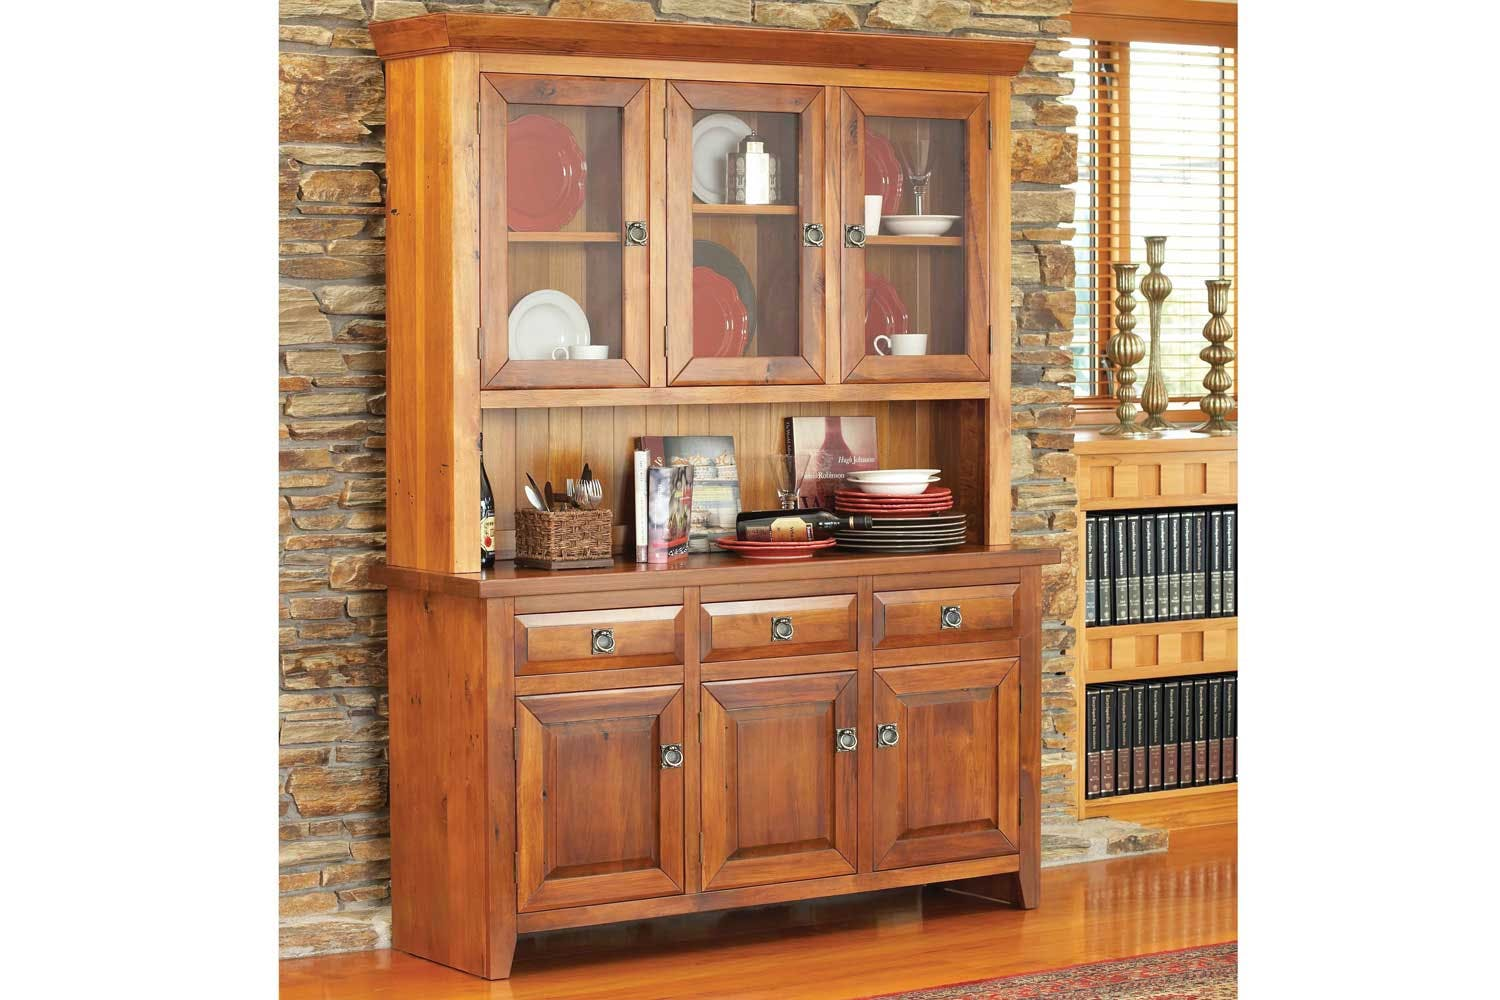 Remarkable Clutha Buffet With Hutch By Woodpecker Furniture Download Free Architecture Designs Scobabritishbridgeorg